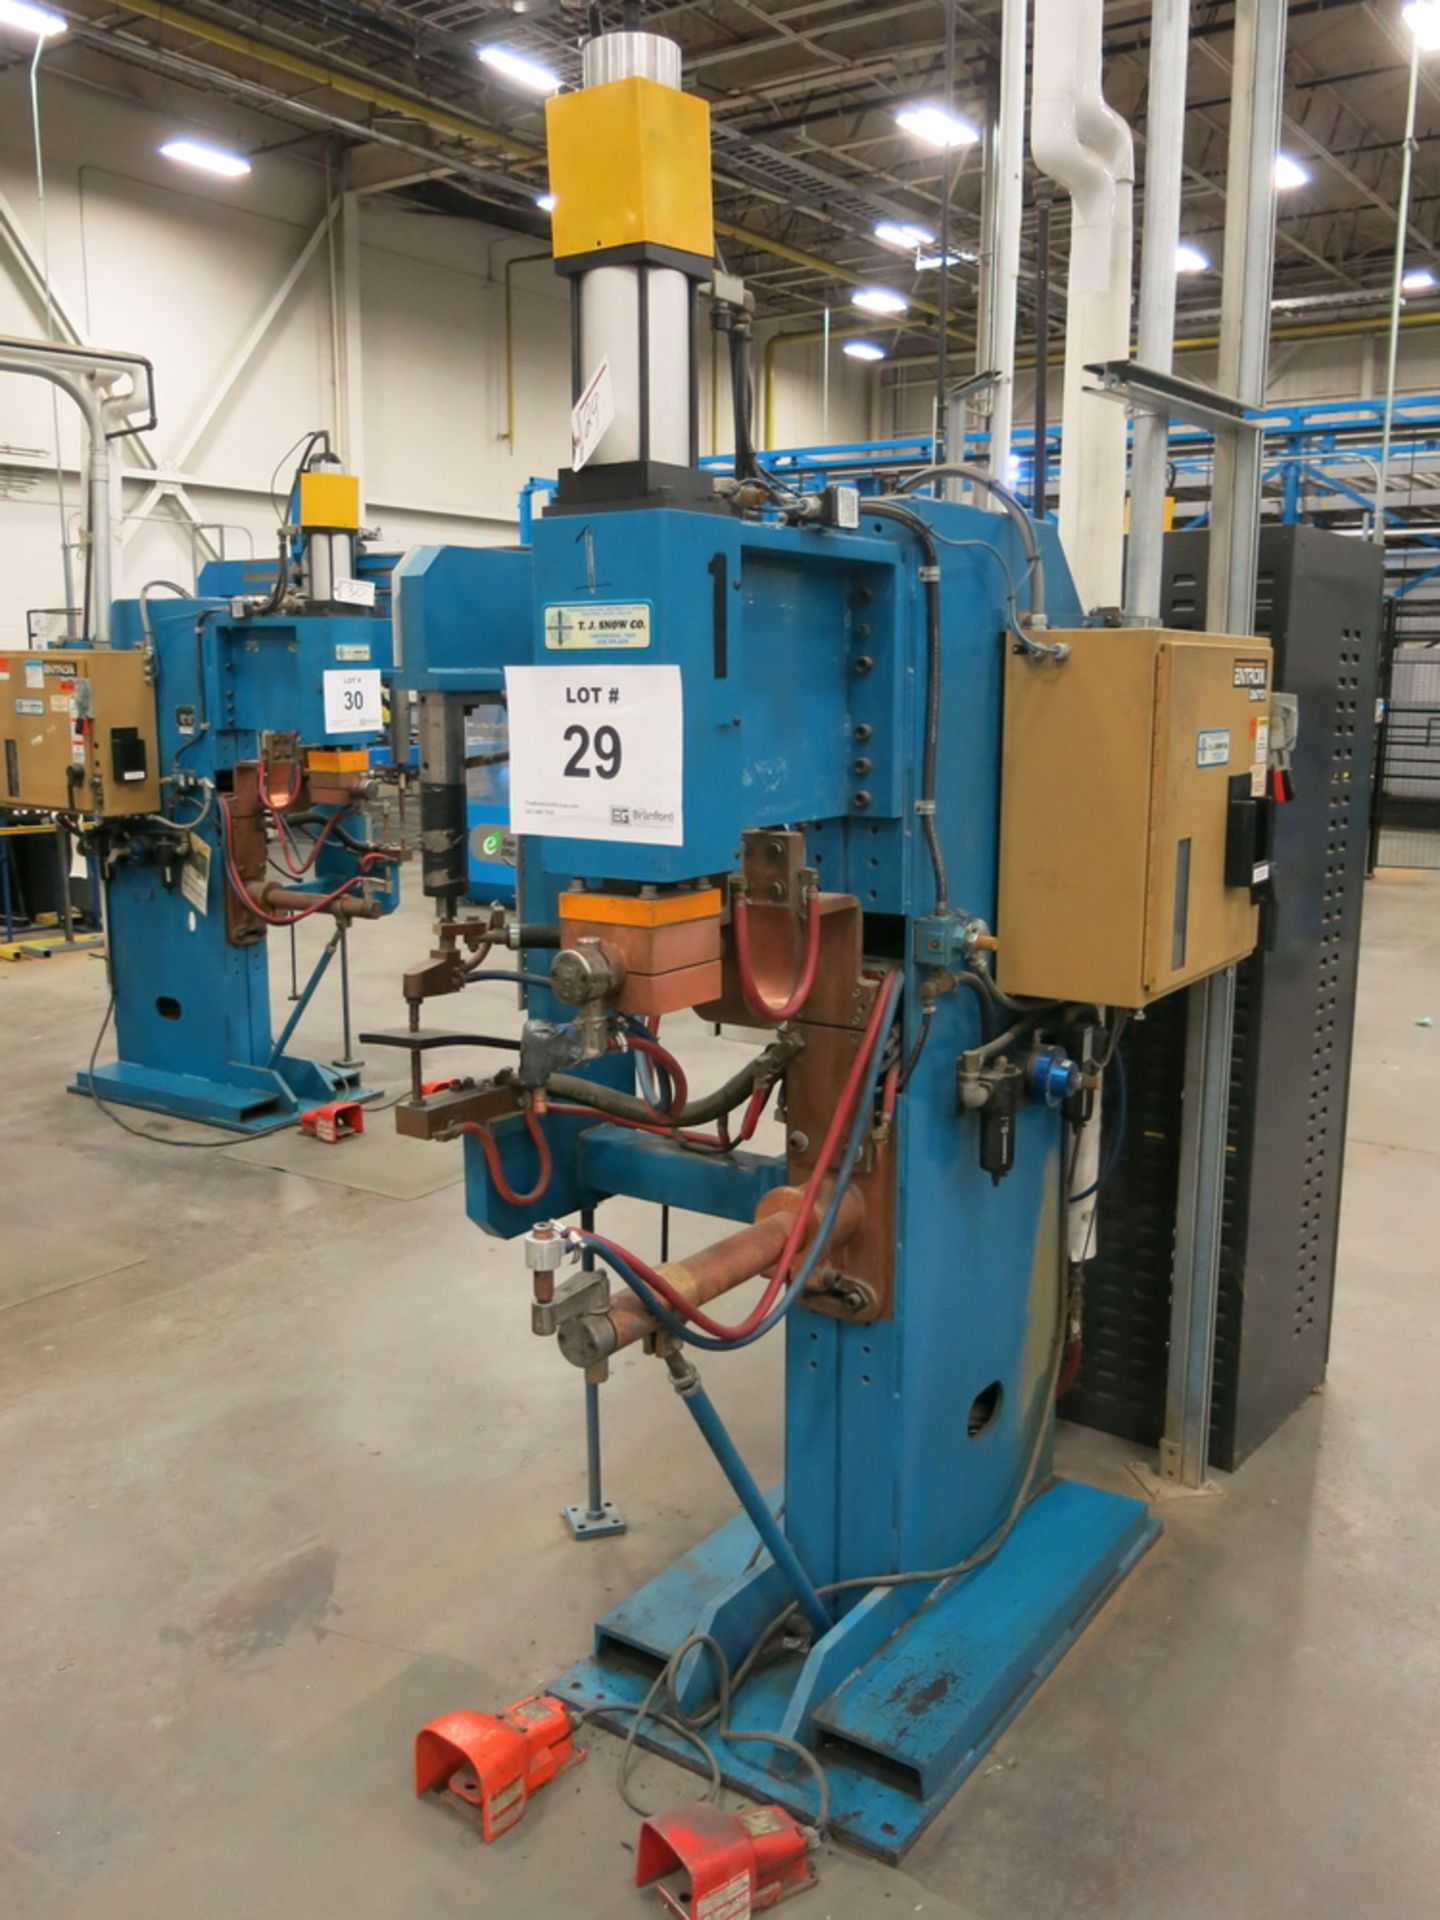 Lot 29 - 2014 T.J. Snow 100 KVA @ 50 Percent M.F.D.C. Dual Head Spot Welder